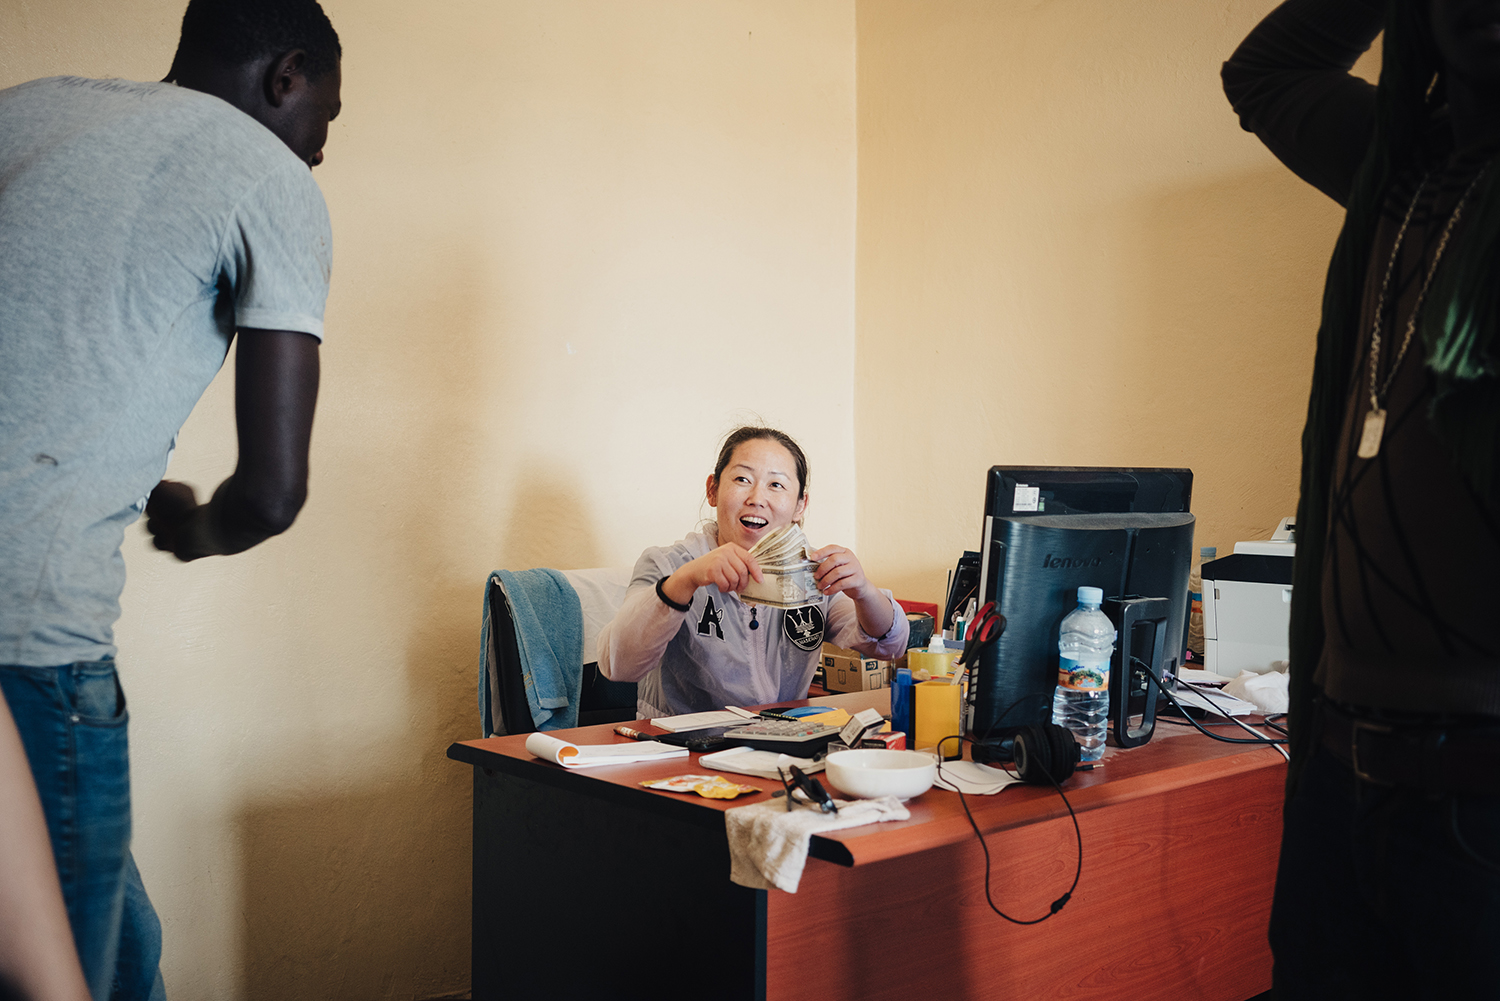 With the end of Ramadan approaching, Mrs. Zhang, a finance employee and cook at Lem Seafood, hands out workers' wages early, June 29, 2016. Local workers are paid around 50,000 Mauritanian Ouguiyas (U.S.$139) every month, which workers say is a good salary.